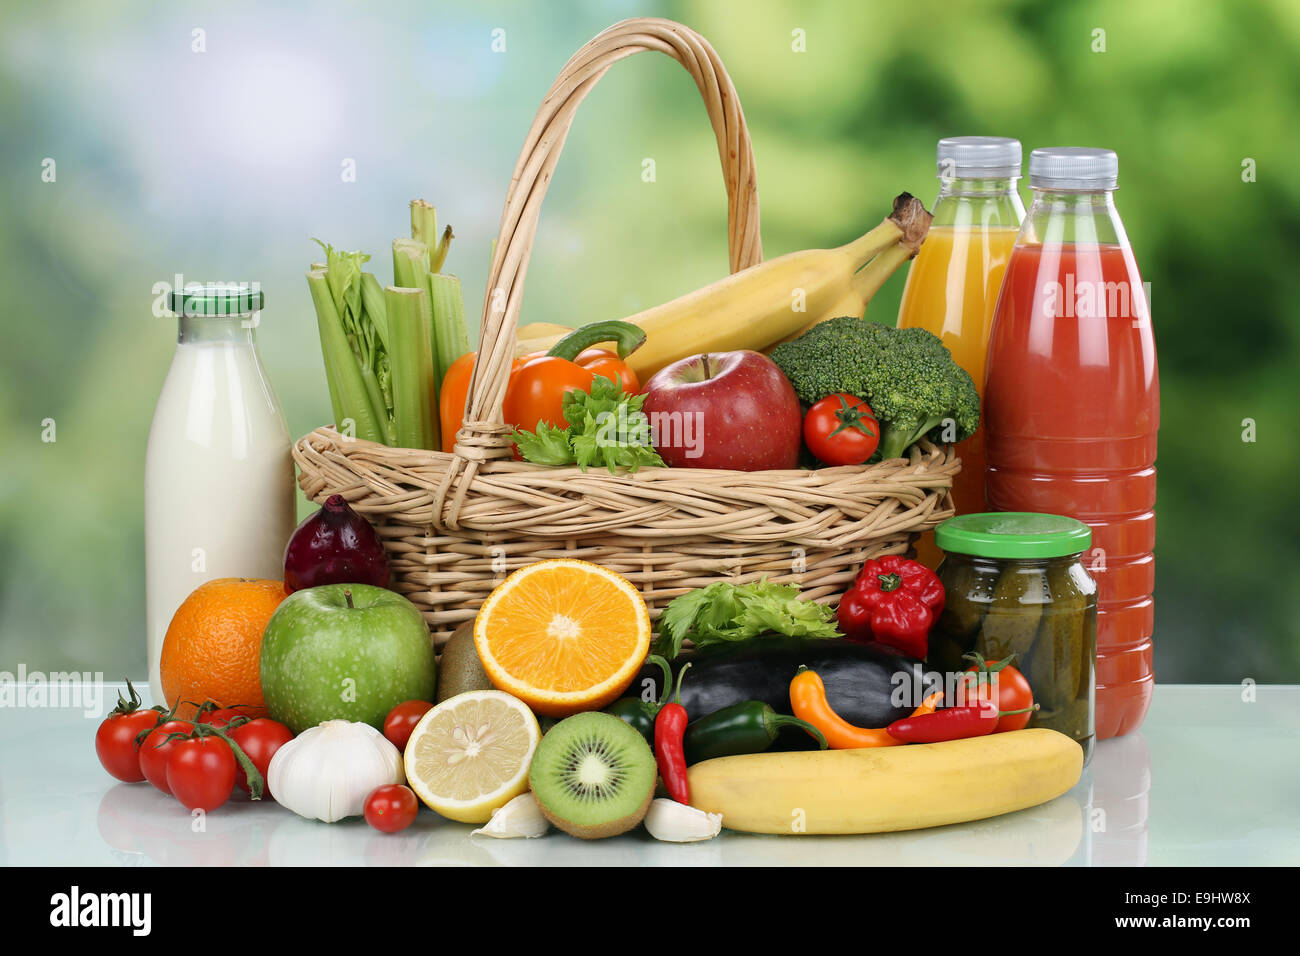 Fruits, Vegetables, Groceries And Beverages In A Shopping Basket